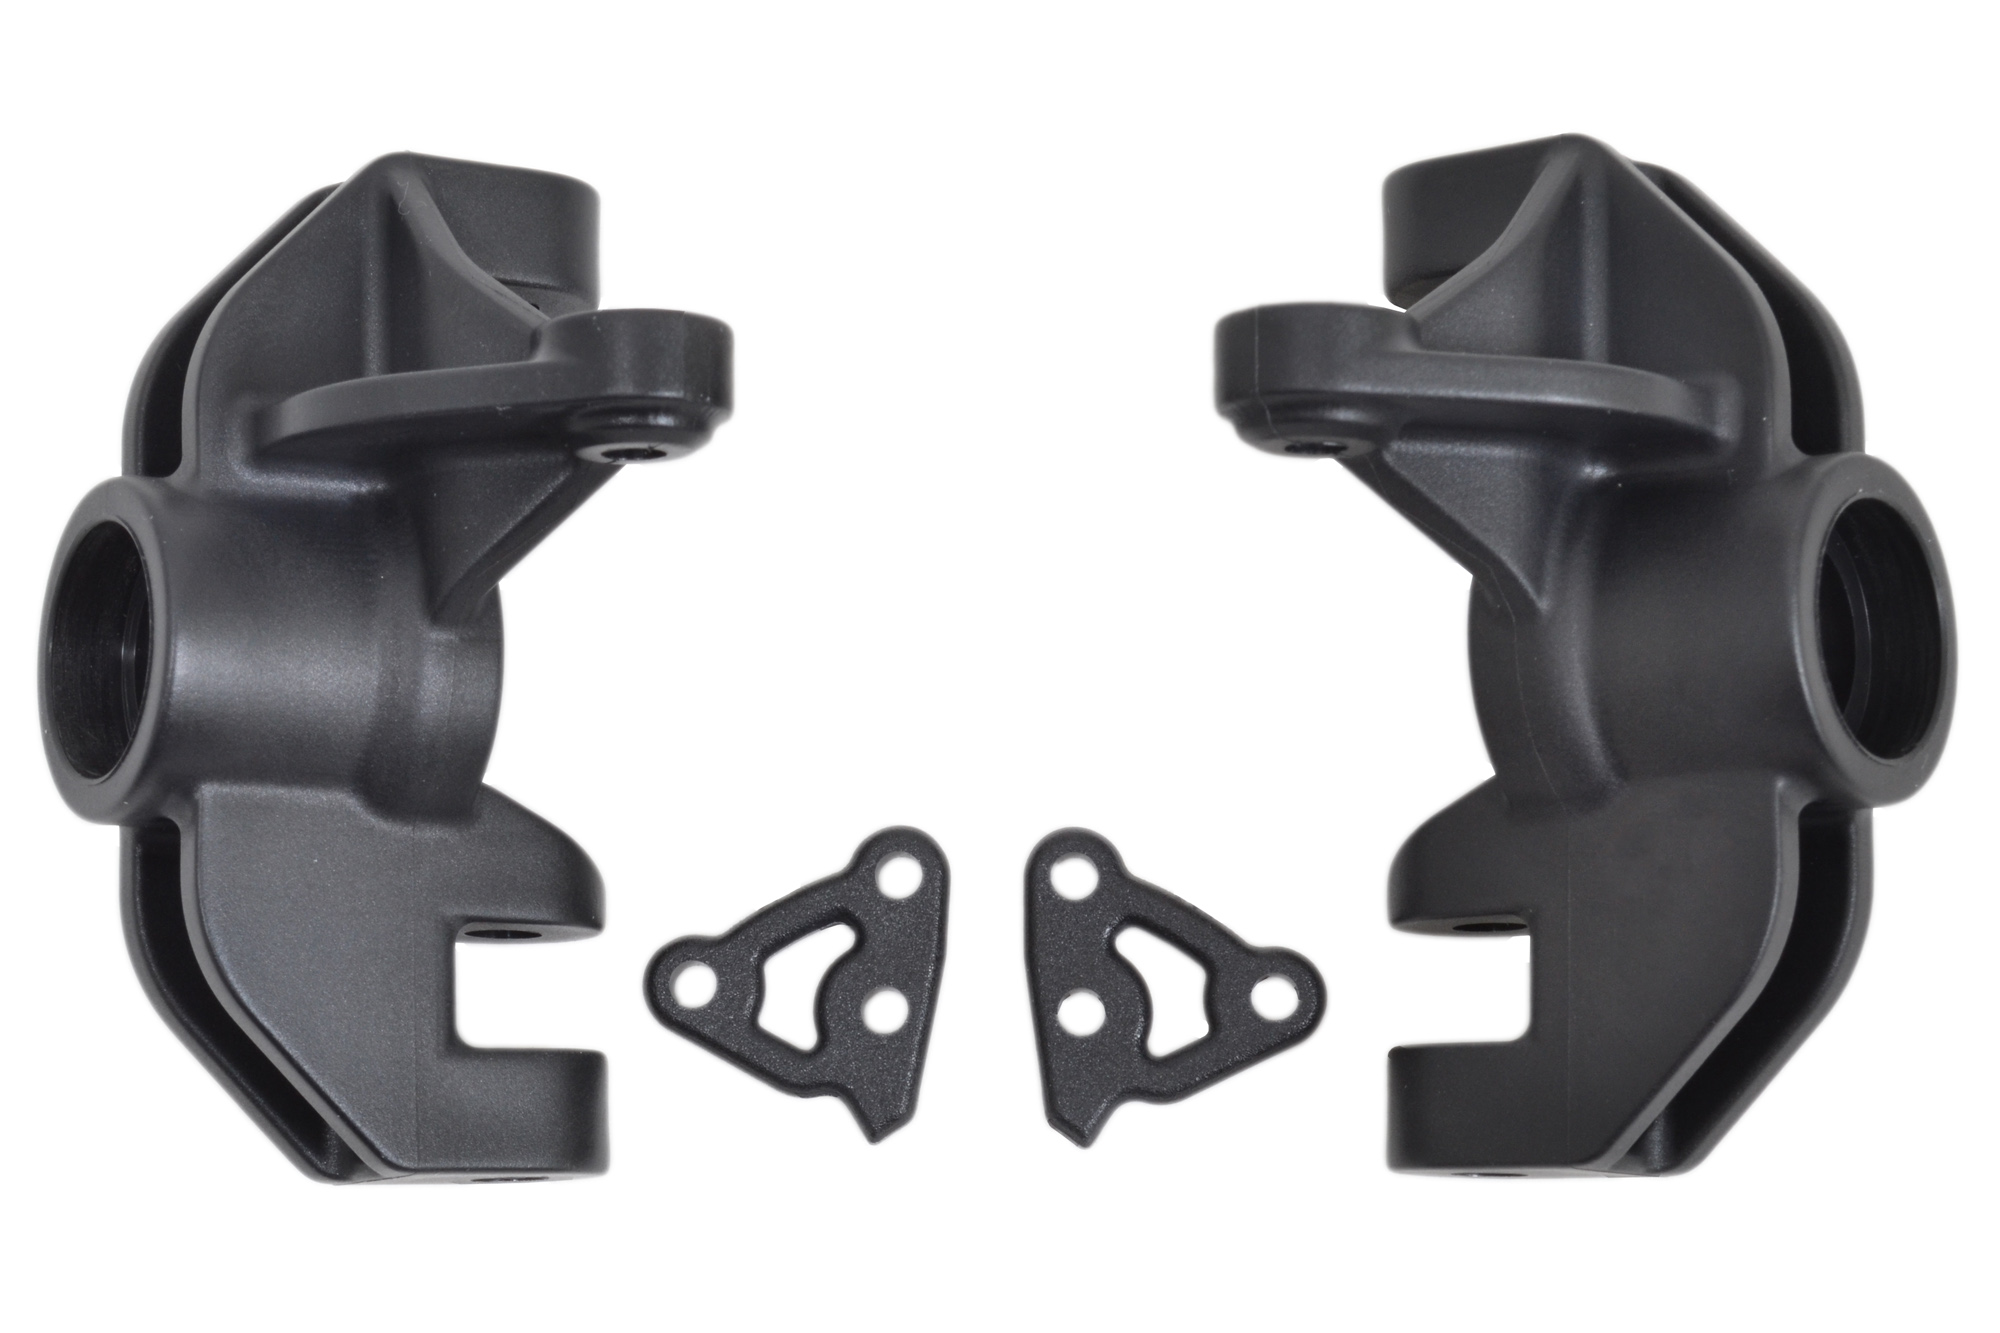 73402 - Front Spindle Set for the Losi Super Rock Rey